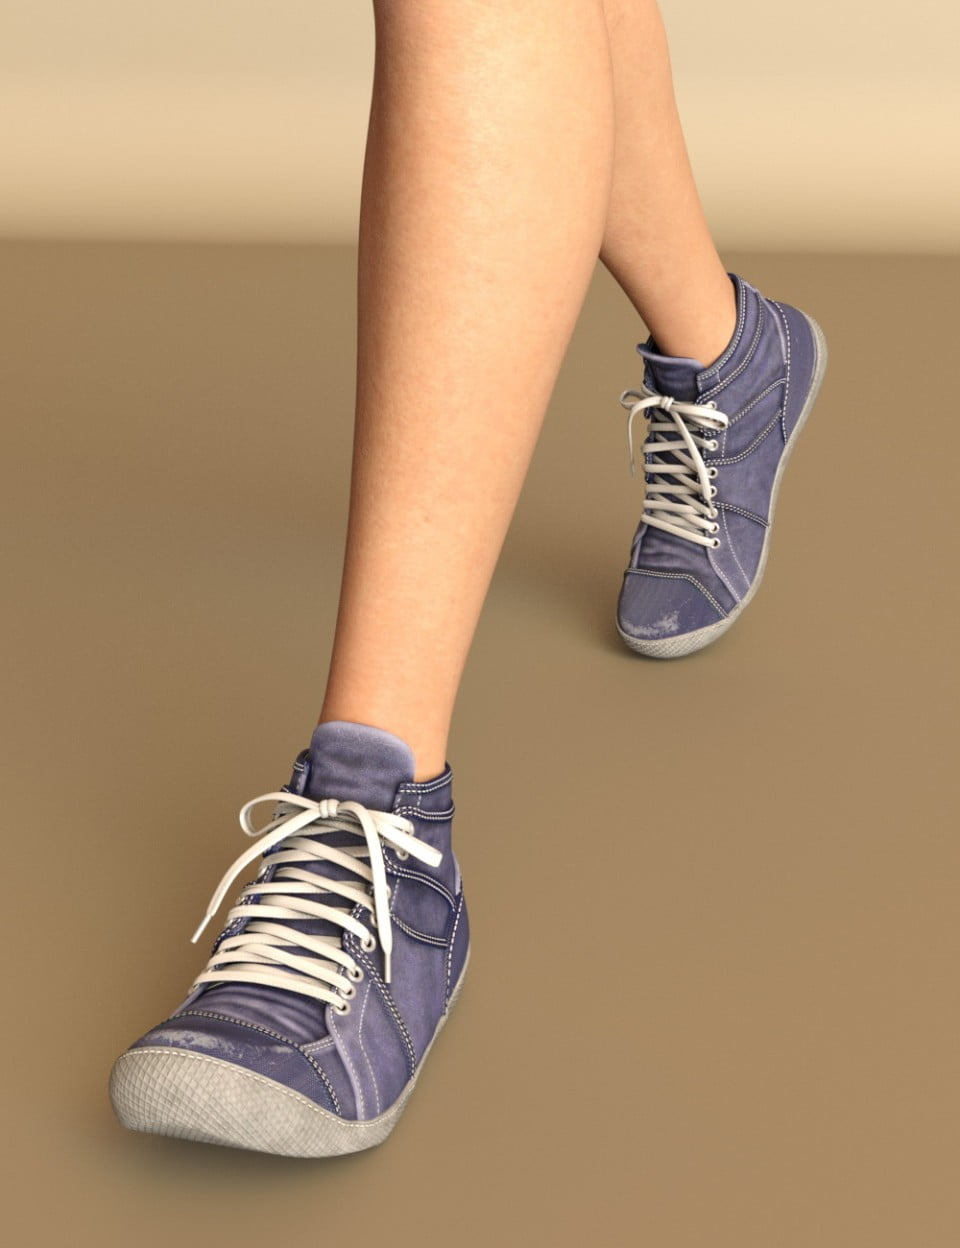 JooJoo Sneakers for Genesis 8 Female(s)